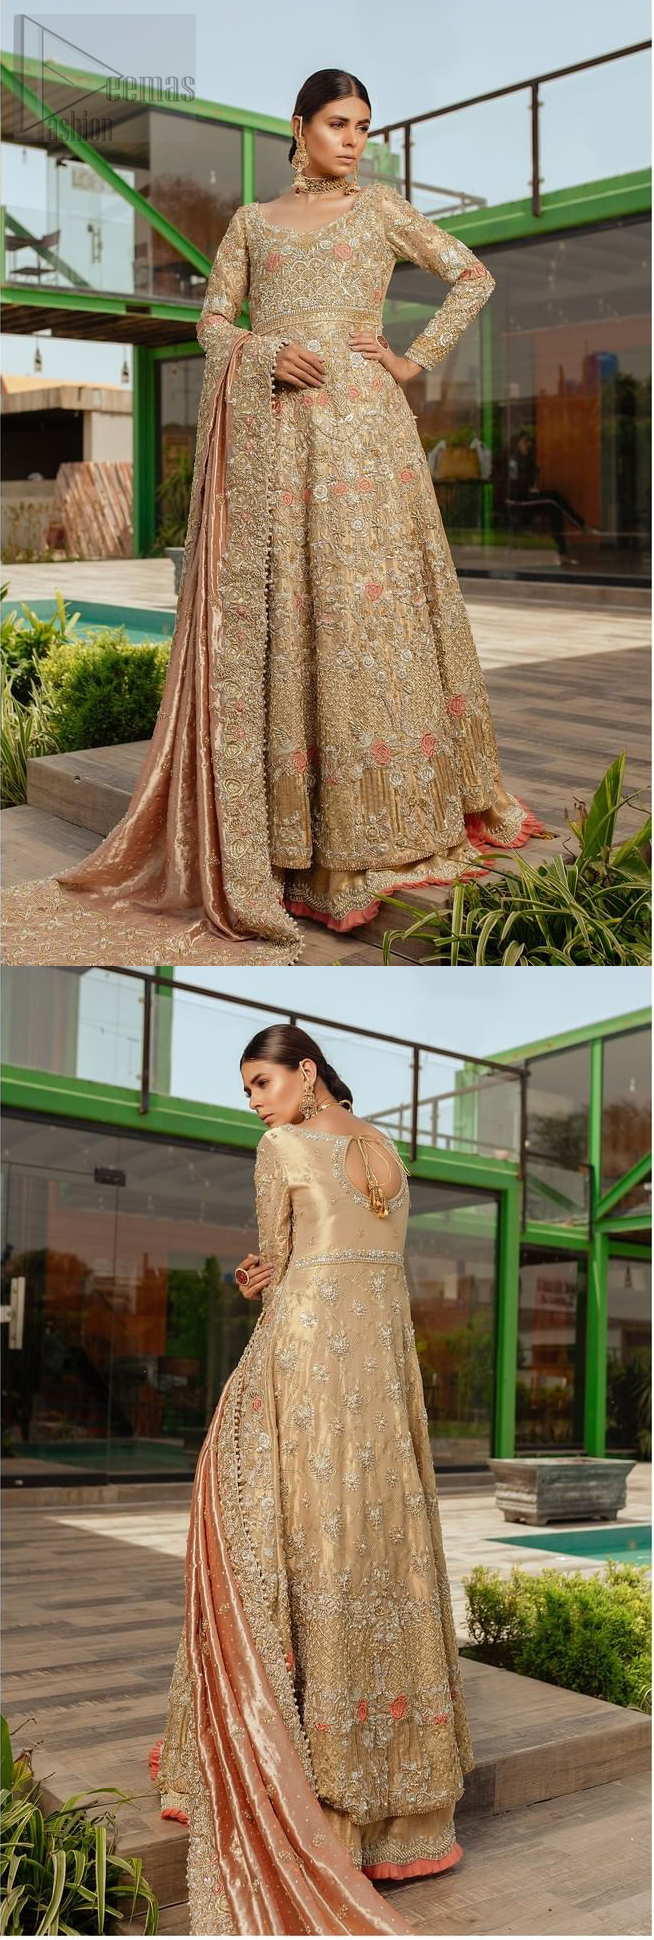 Nothing speaks of femininity and class louder than this outfits for bridesmaids. It is highlighted with golden and silver kora, dabka, tilla, sequins and pearls. The maxi is heavily ornamented with floral jaal done with zarozi work and floral motifs are decorated with peach and ivory thread embroidery. It comes with fawn lehenga adorned with scalloped embroidered bottom. Furthermore, lehenga is enhanced with peach frilled bottom. It is coordinated with peach dupatta which is sprinkled with sequins all over it. It is further furnished with four sided thick border.